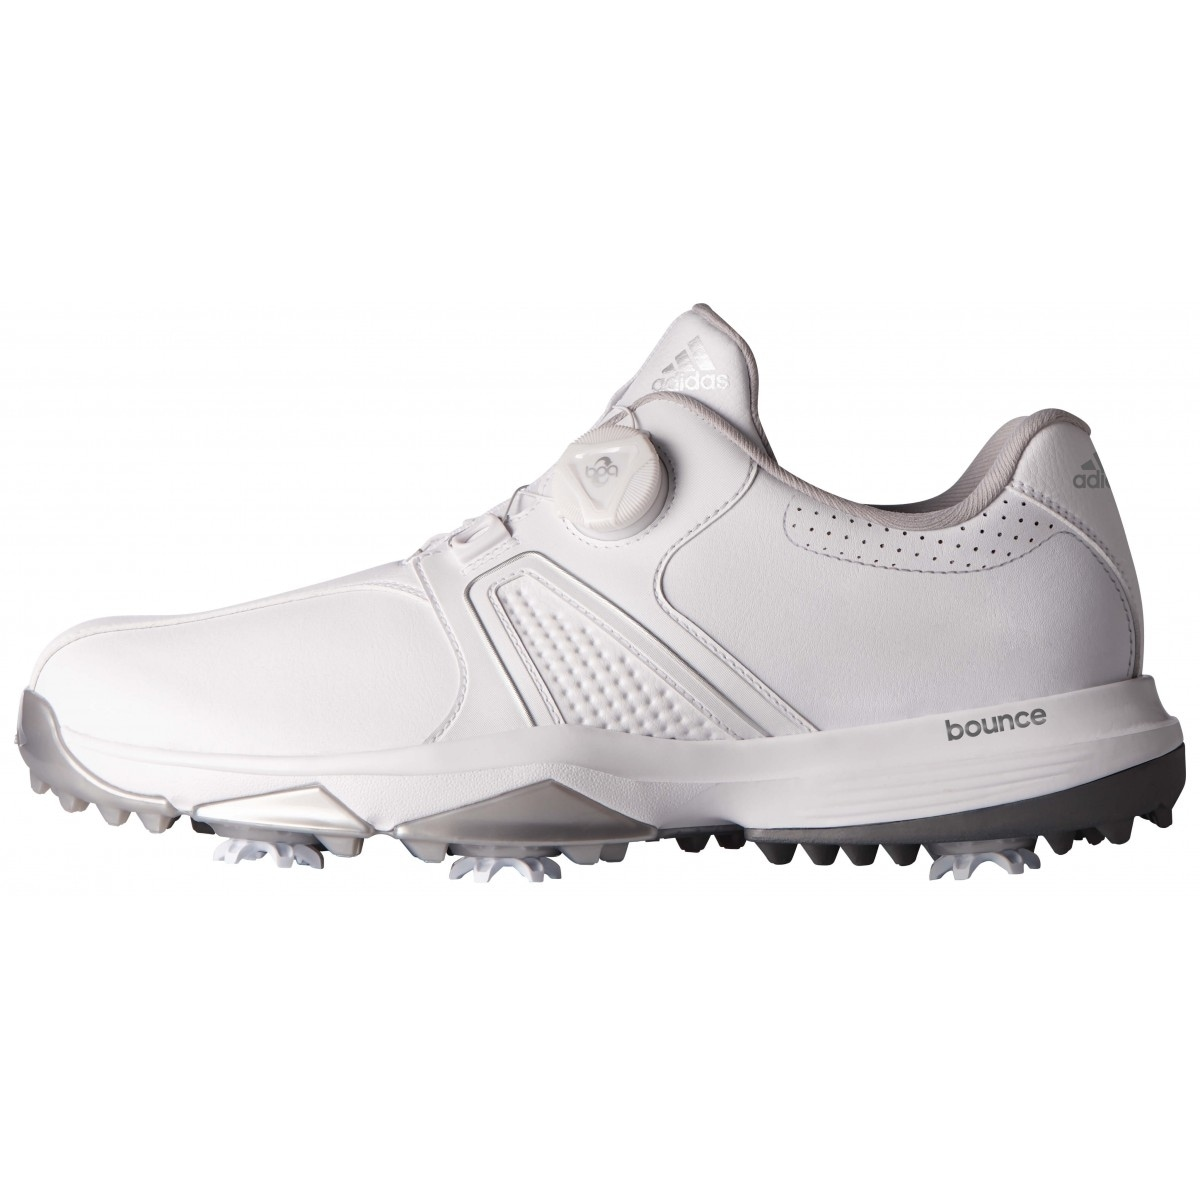 3fbea423469e Shop Adidas Men s 360 Traxion BOA White Golf Shoes Q44949 Q44953 - Free  Shipping Today - Overstock - 20603537